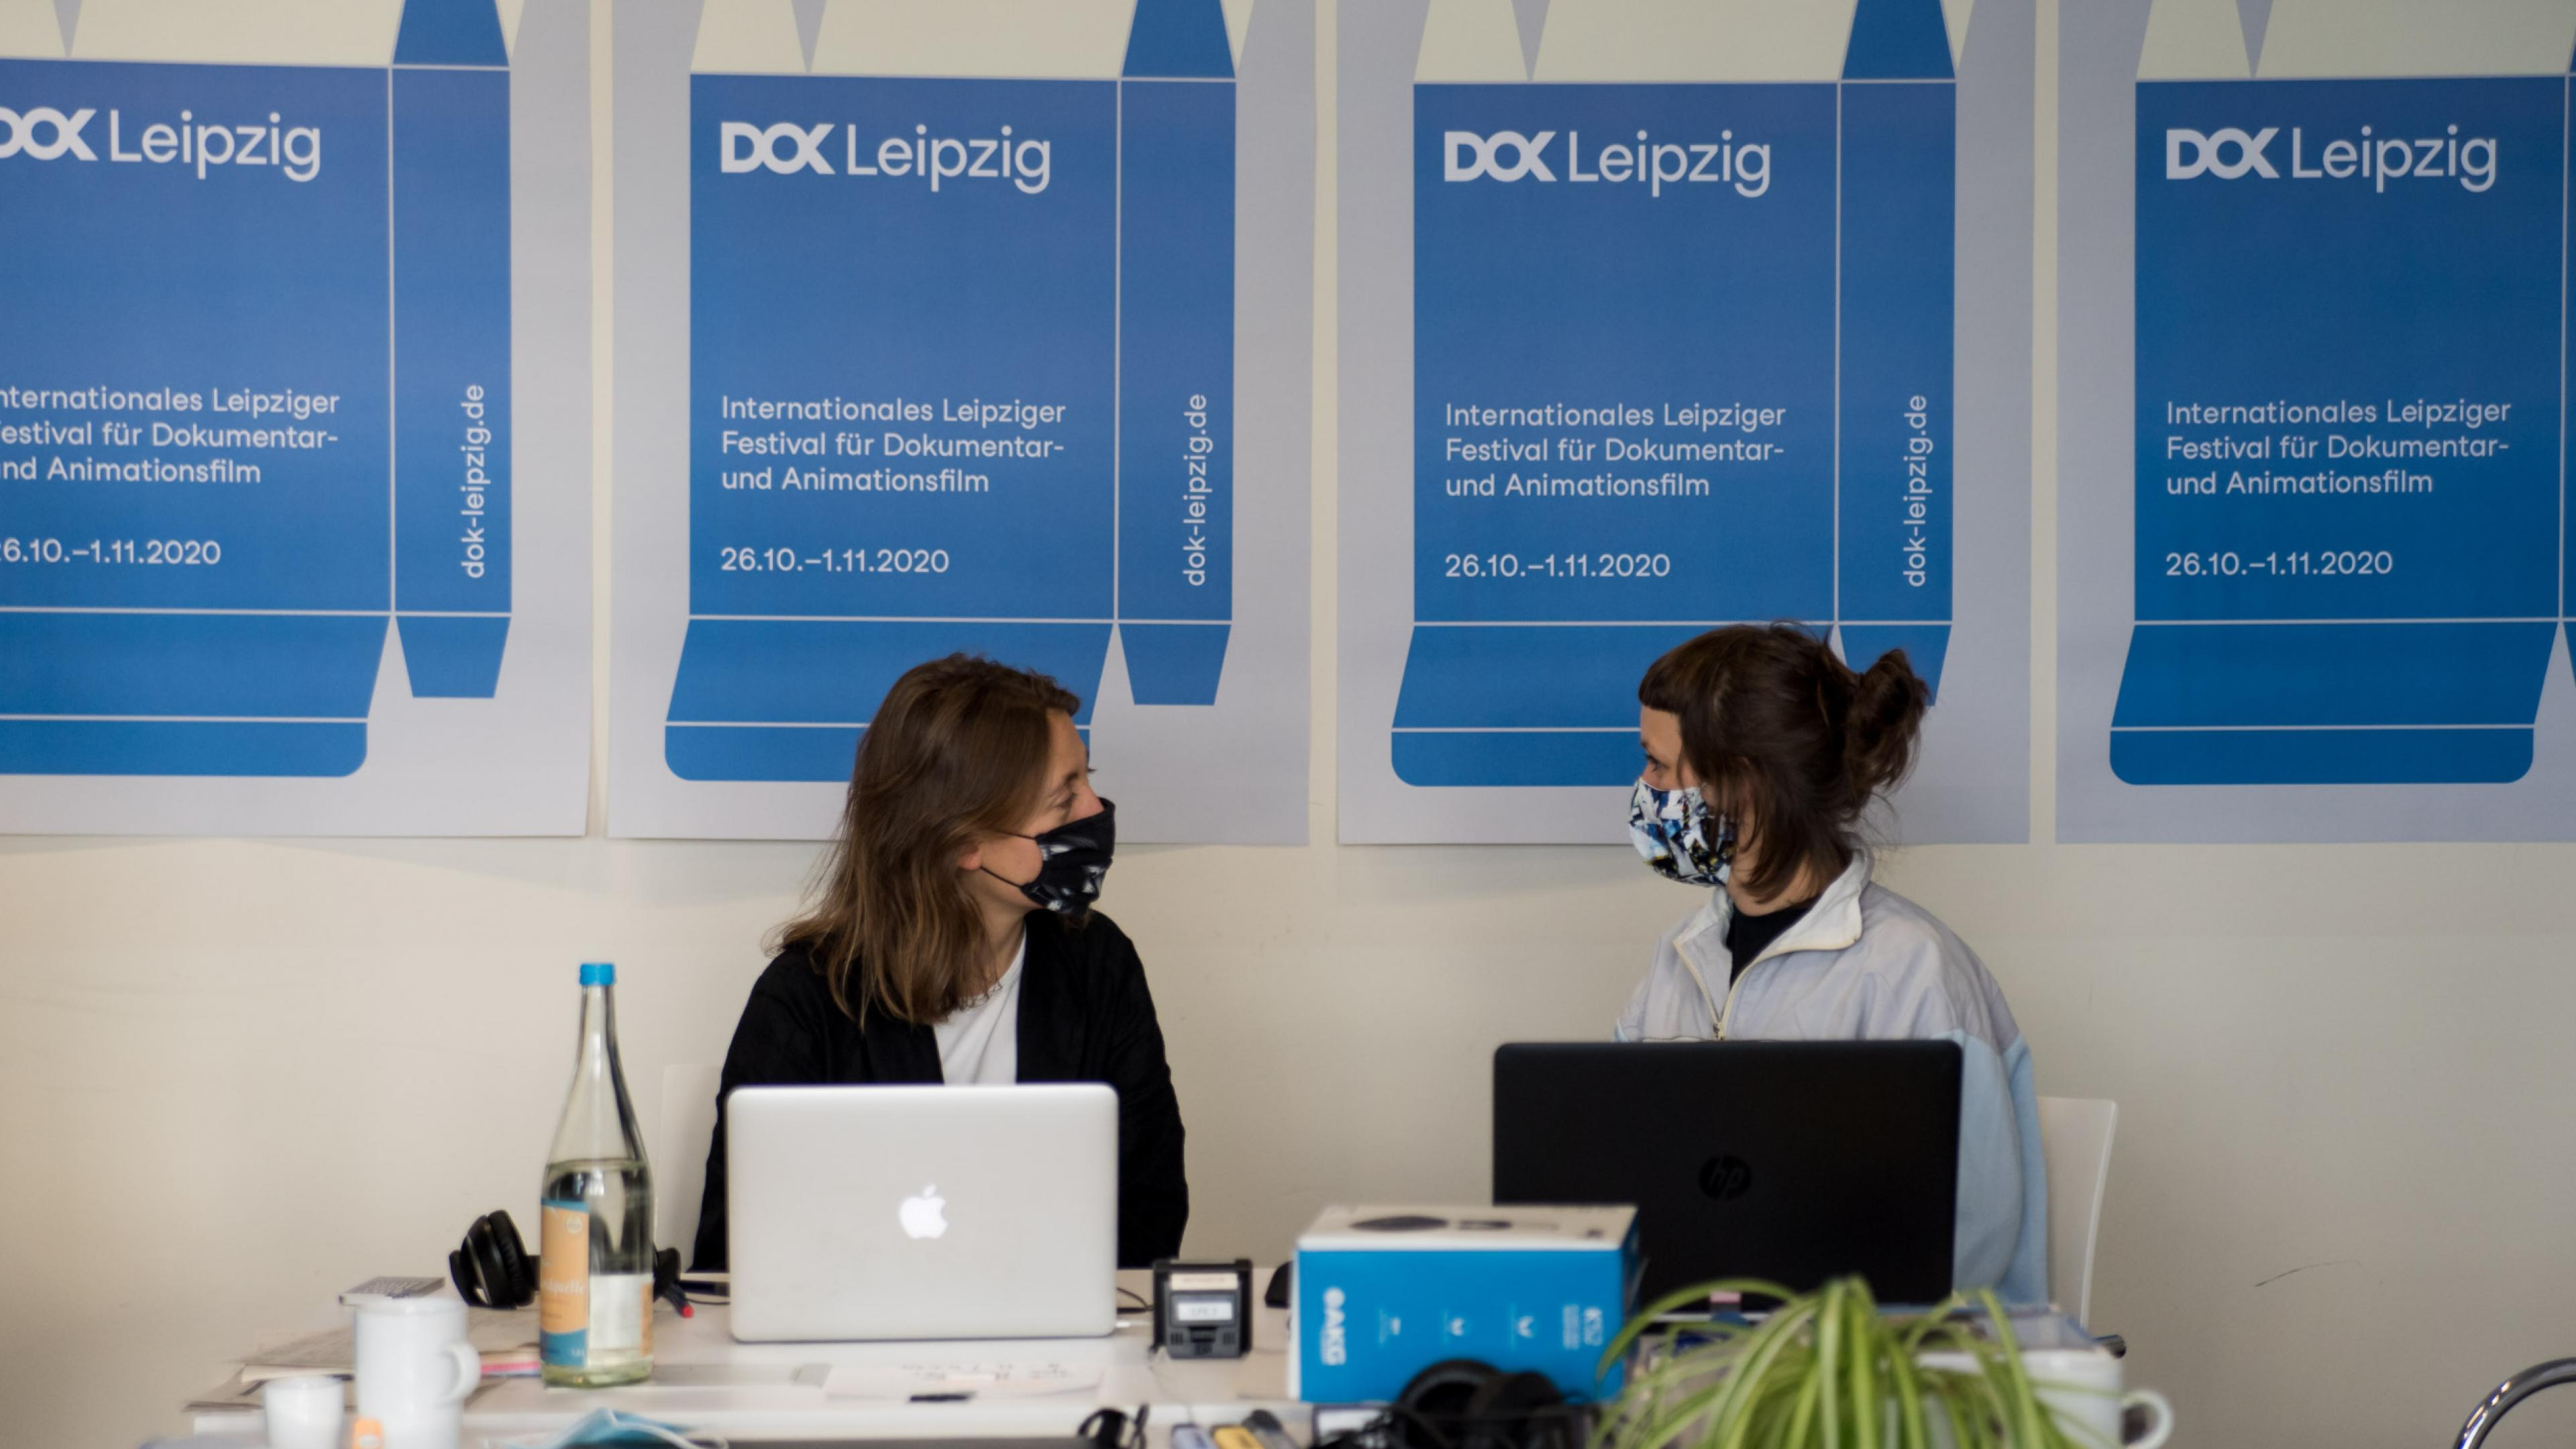 A row of DOK Industry posters on the wall, in front of them two women with masks are sitting next to each other in fron of their laptops and look at each other